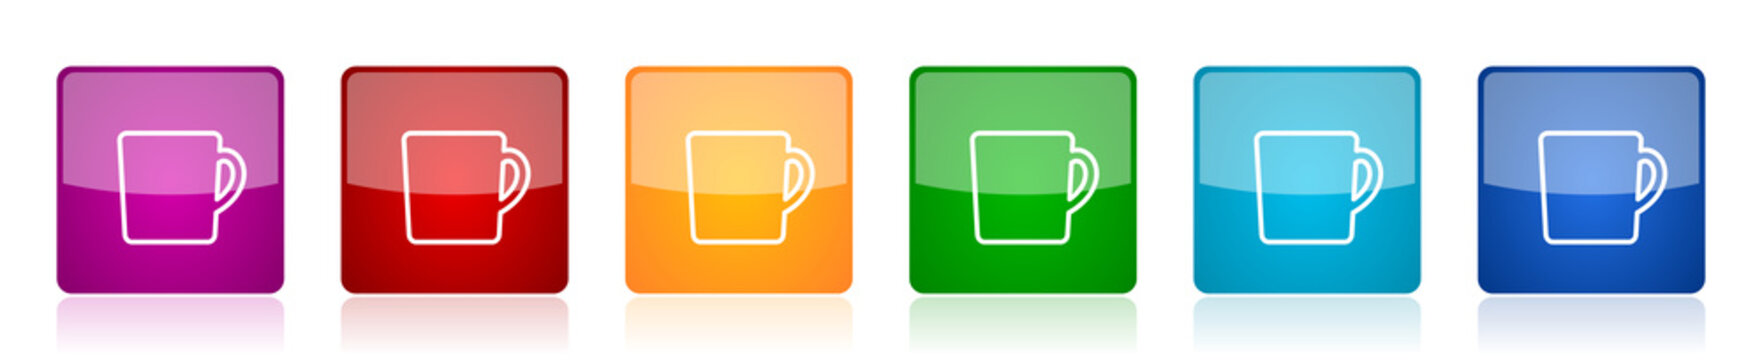 Drink, cup of coffee icon set, square glossy vector buttons in 6 colors options for webdesign and mobile applications